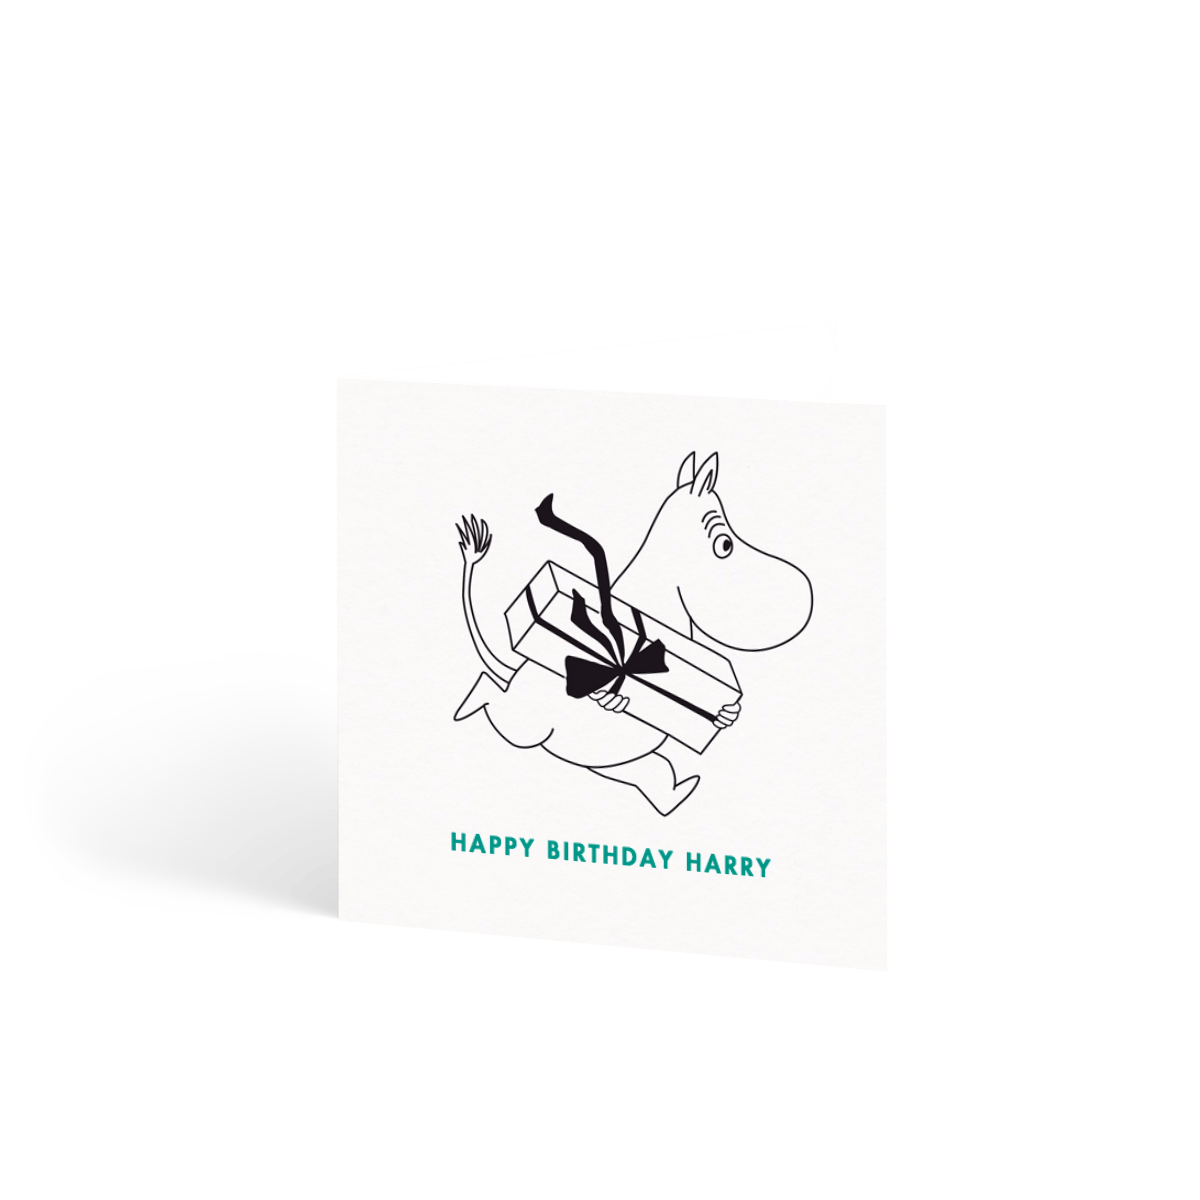 Https%3a%2f%2fwww.papier.com%2fproduct image%2f22797%2f16%2fmoomintroll with present 5725 front 1496329316.png?ixlib=rb 1.1